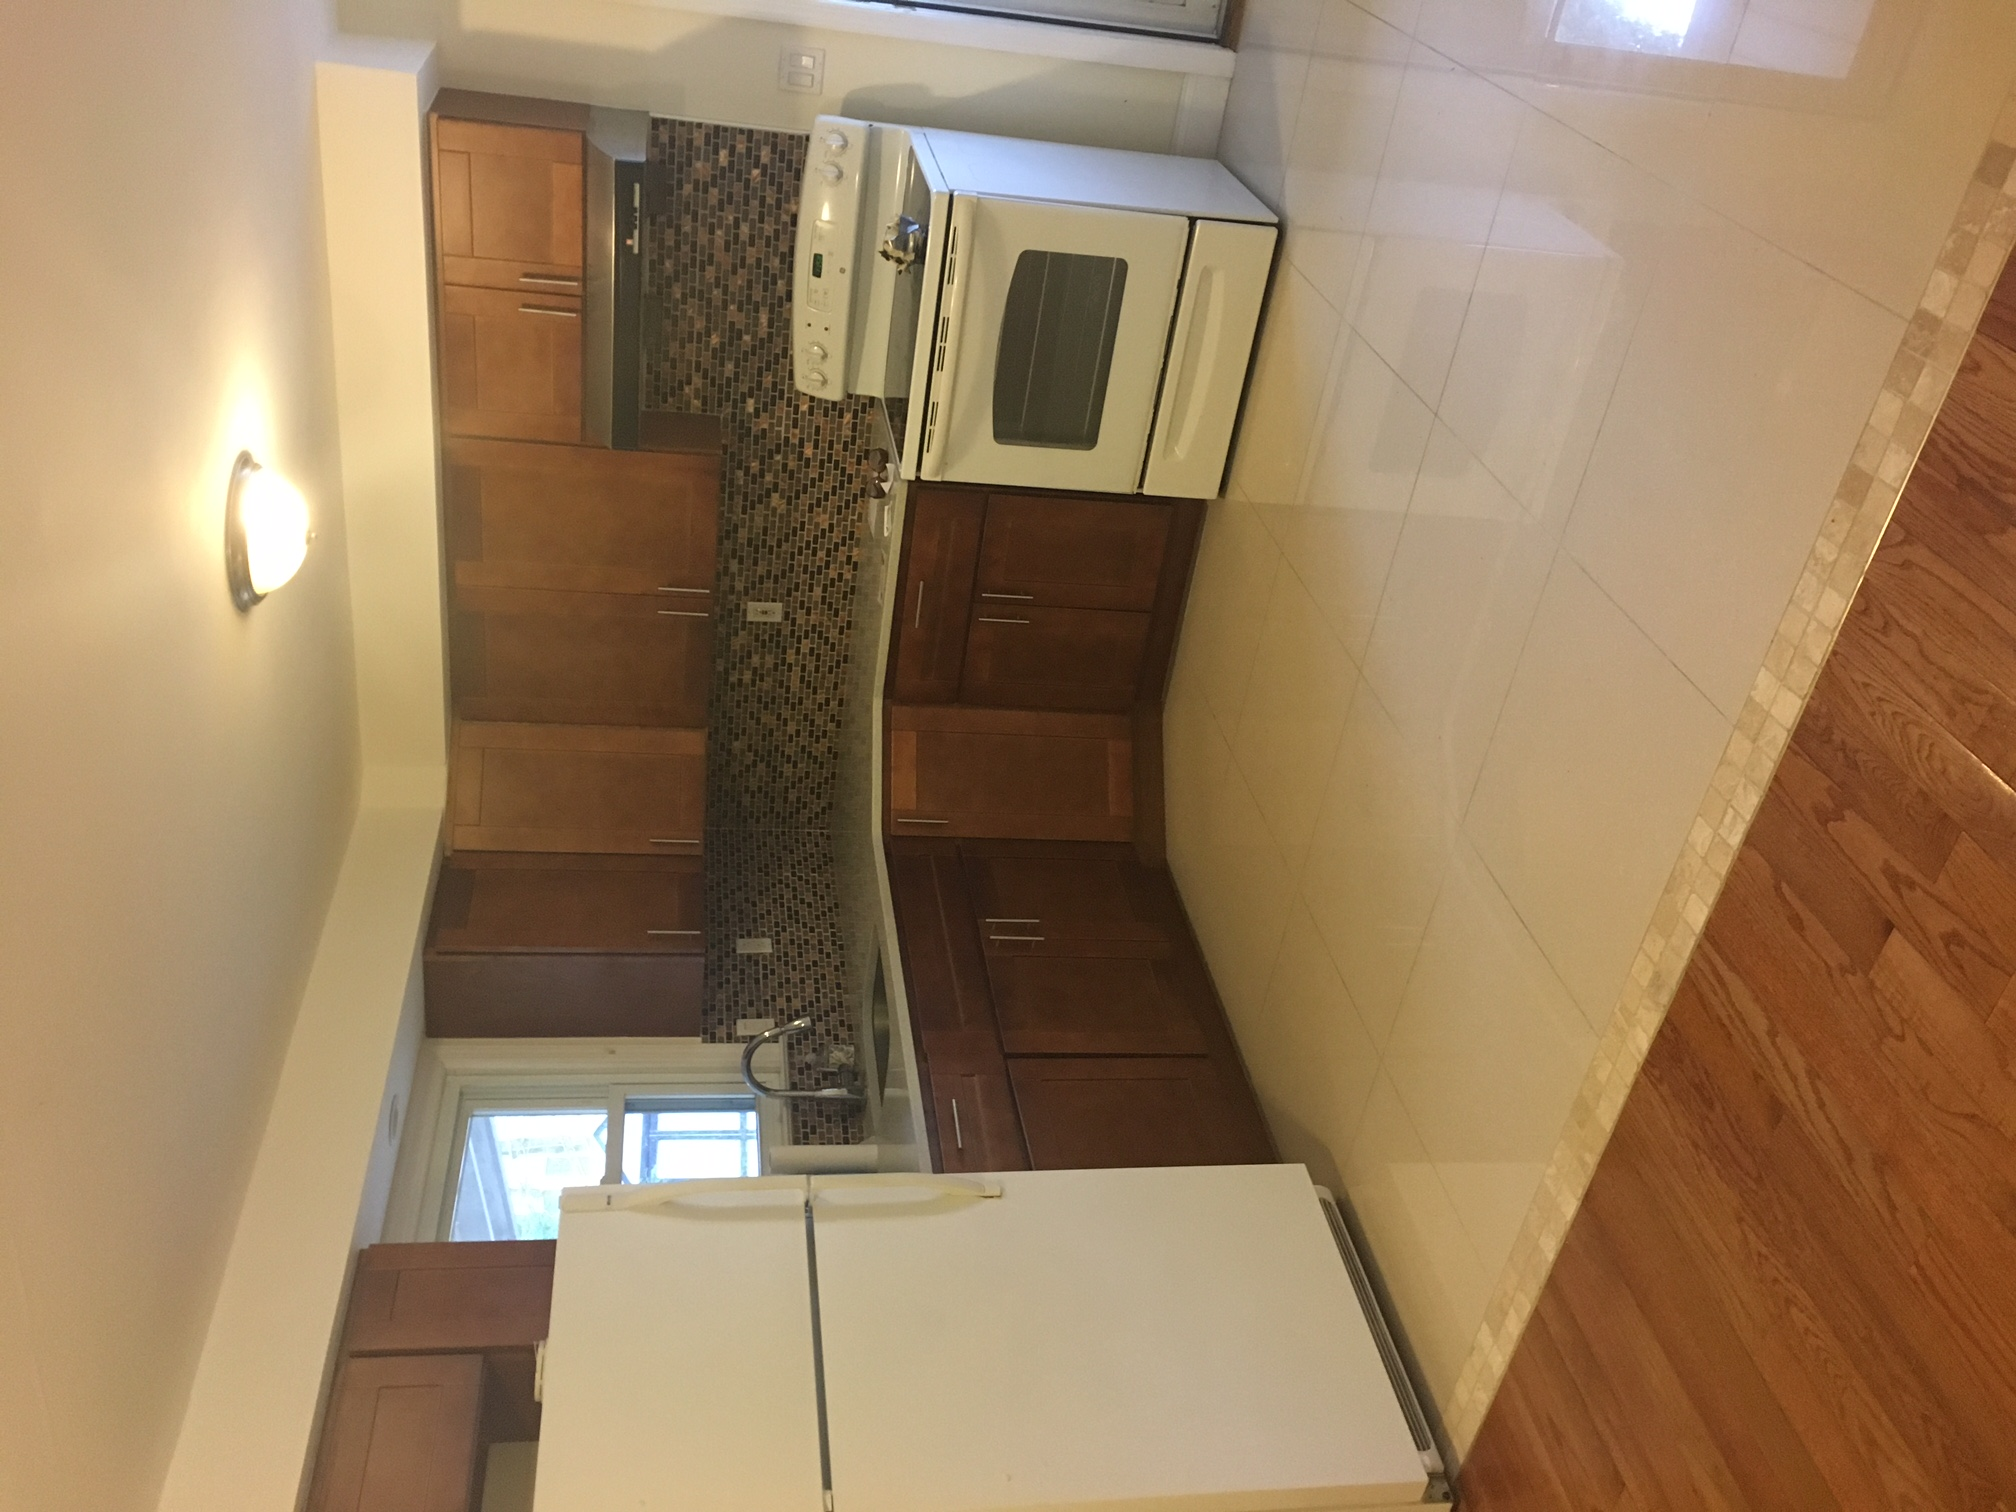 Single Family Home for Sale at Huntington 12 Koster Ct Huntington, New York, 11743 United States